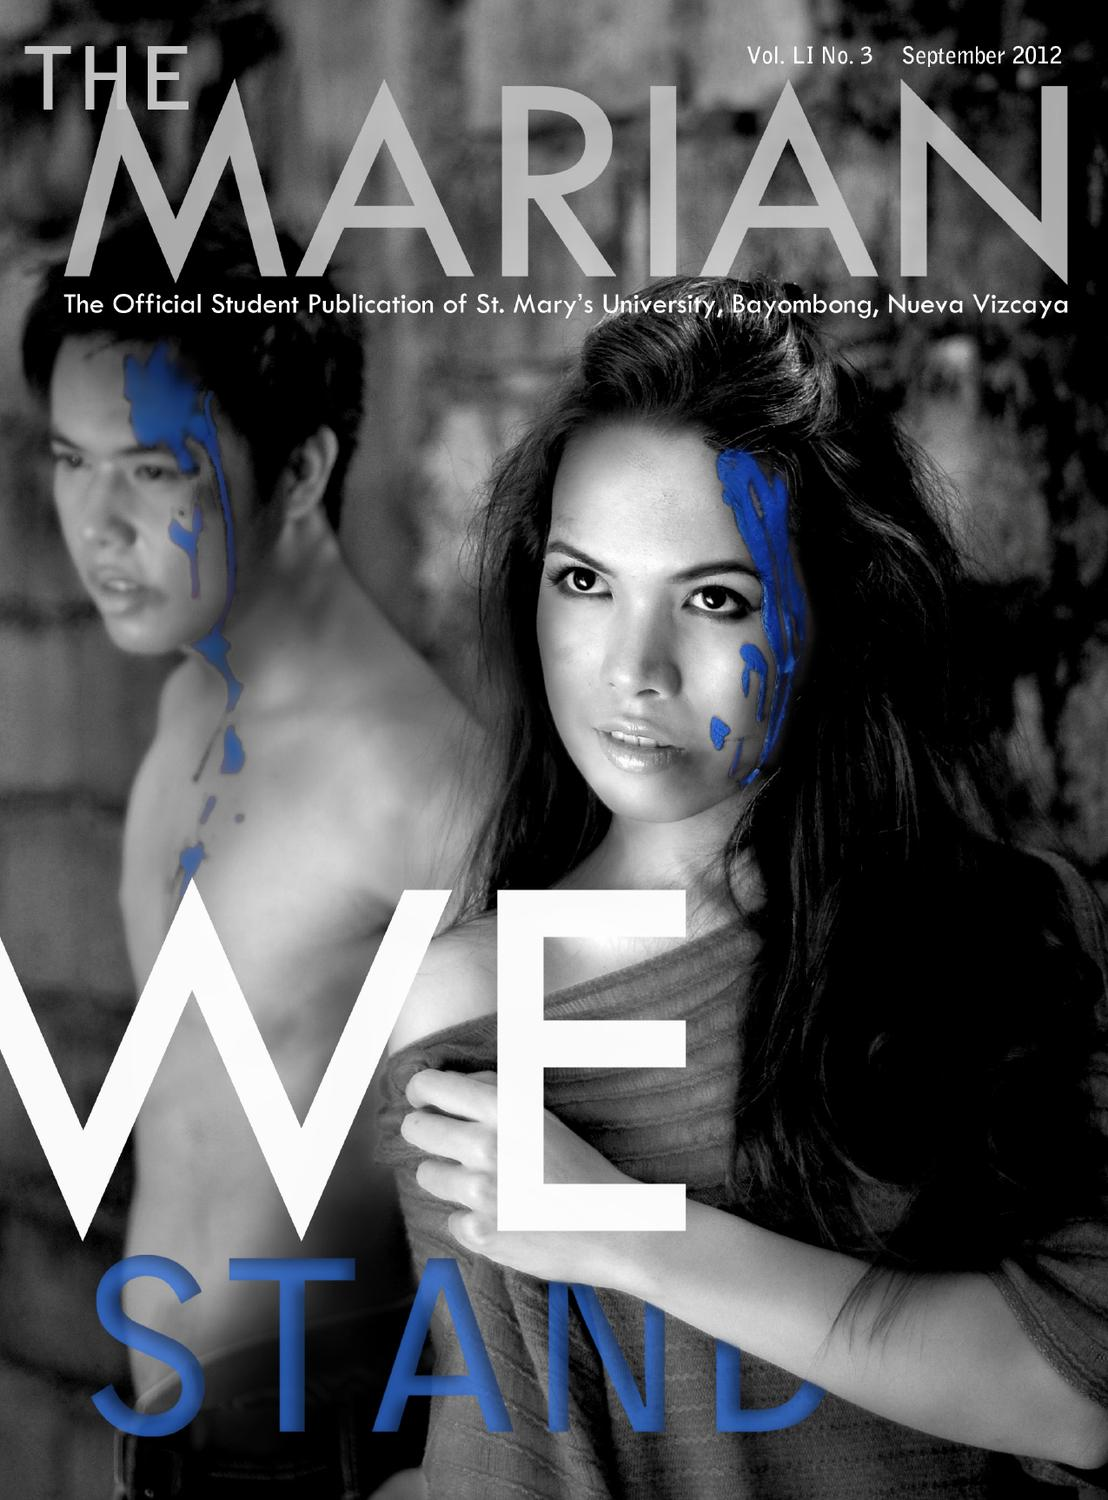 We STAND: The MARIAN Magazine 2012 by The MARIAN SMU - issuu